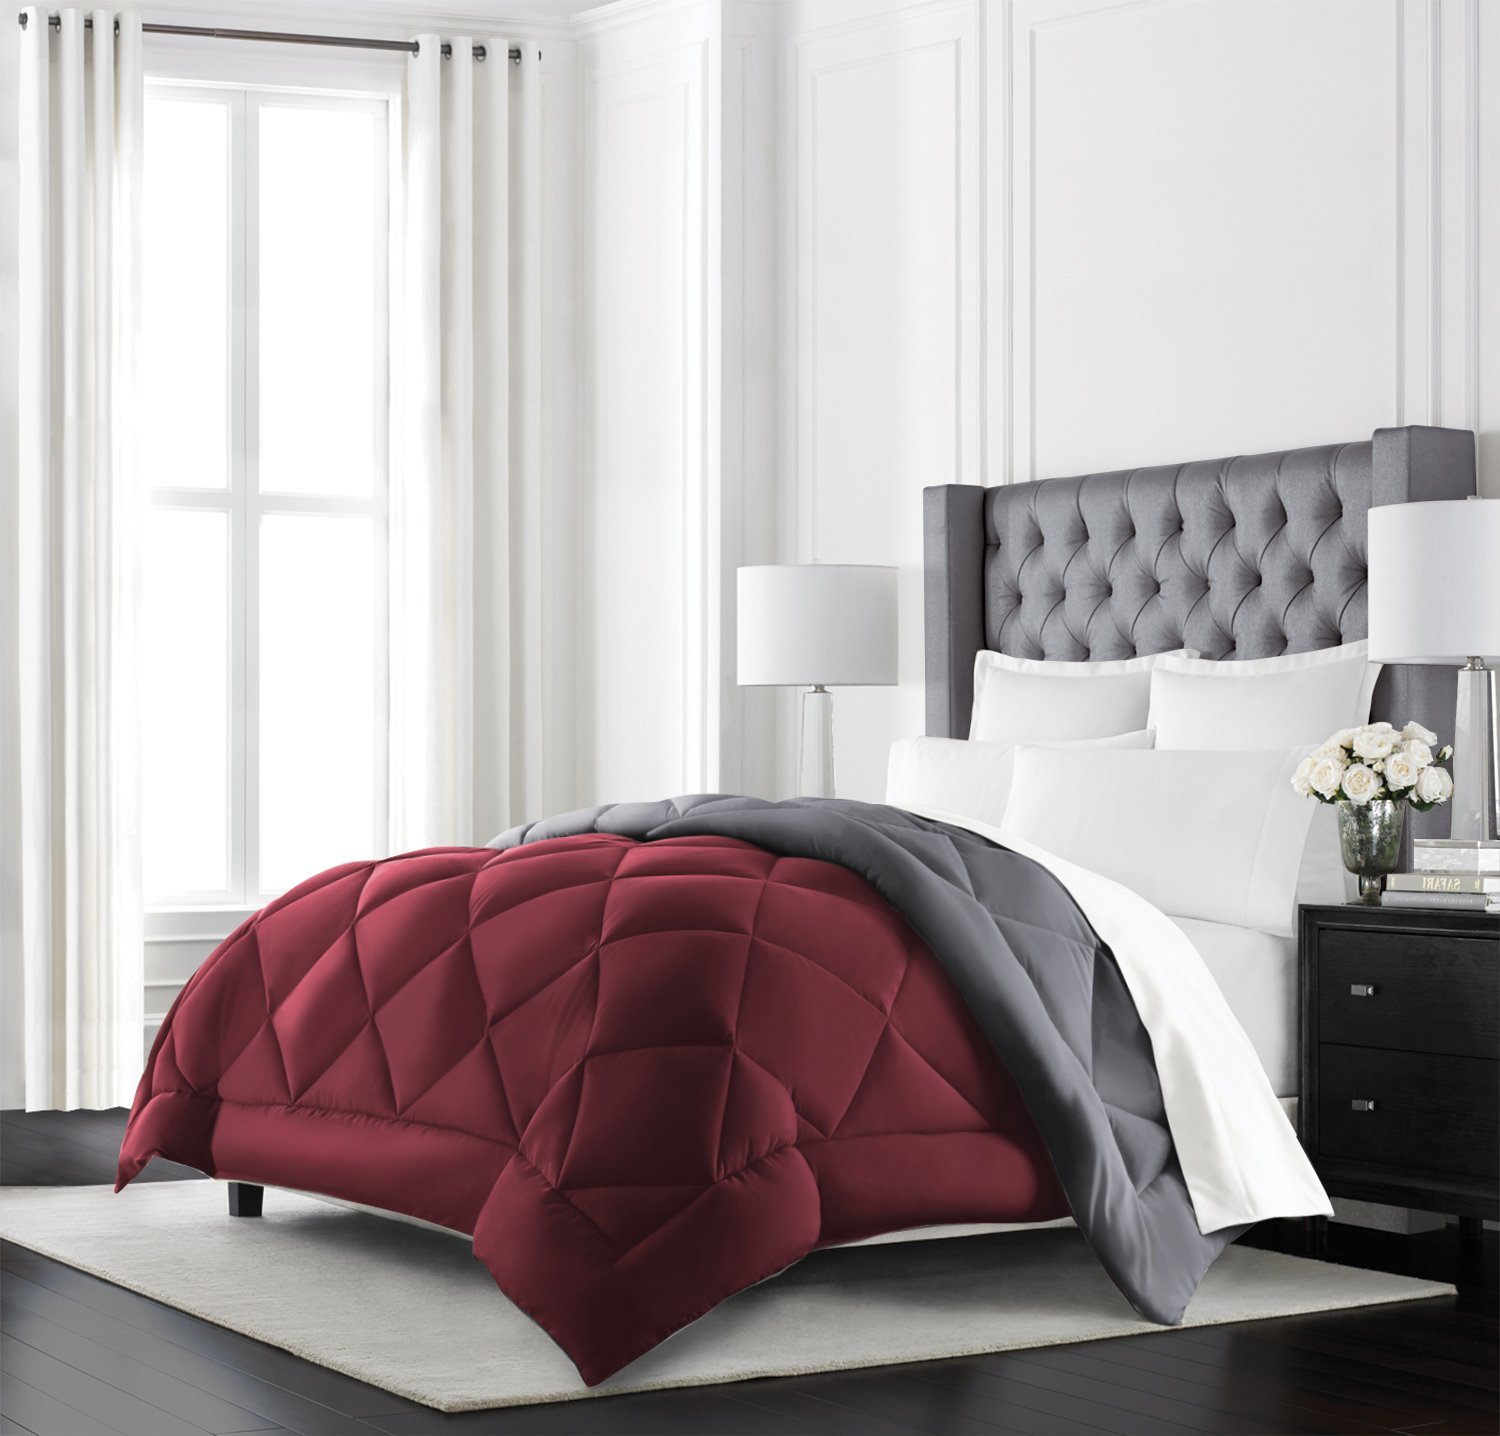 Difference Between Down Comforter and Alternative Down Comforter